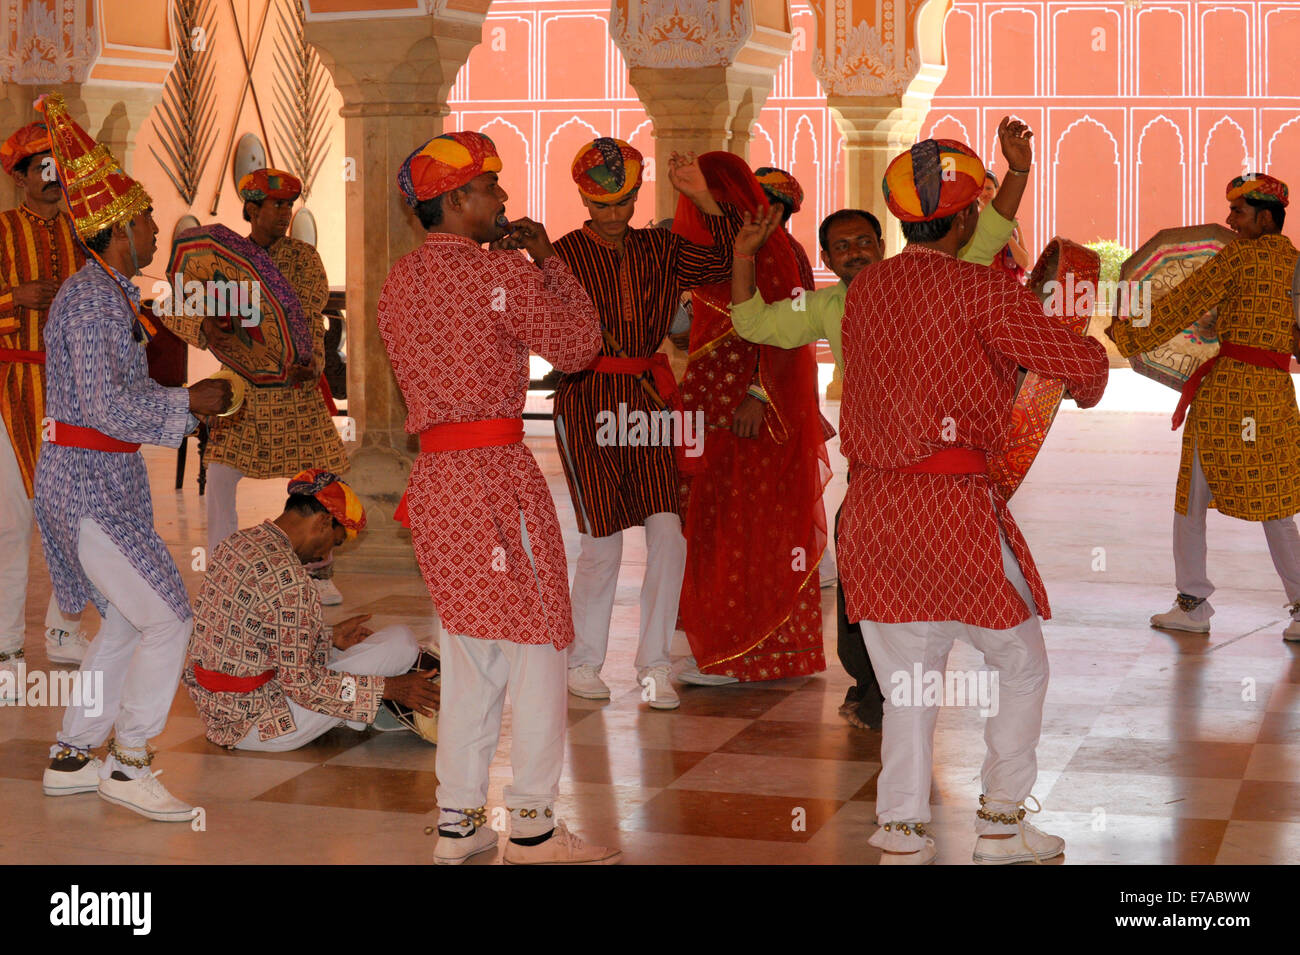 A traditional dance troupe performing in the City Palace of Jaipur, in Rajasthan, India - Stock Image